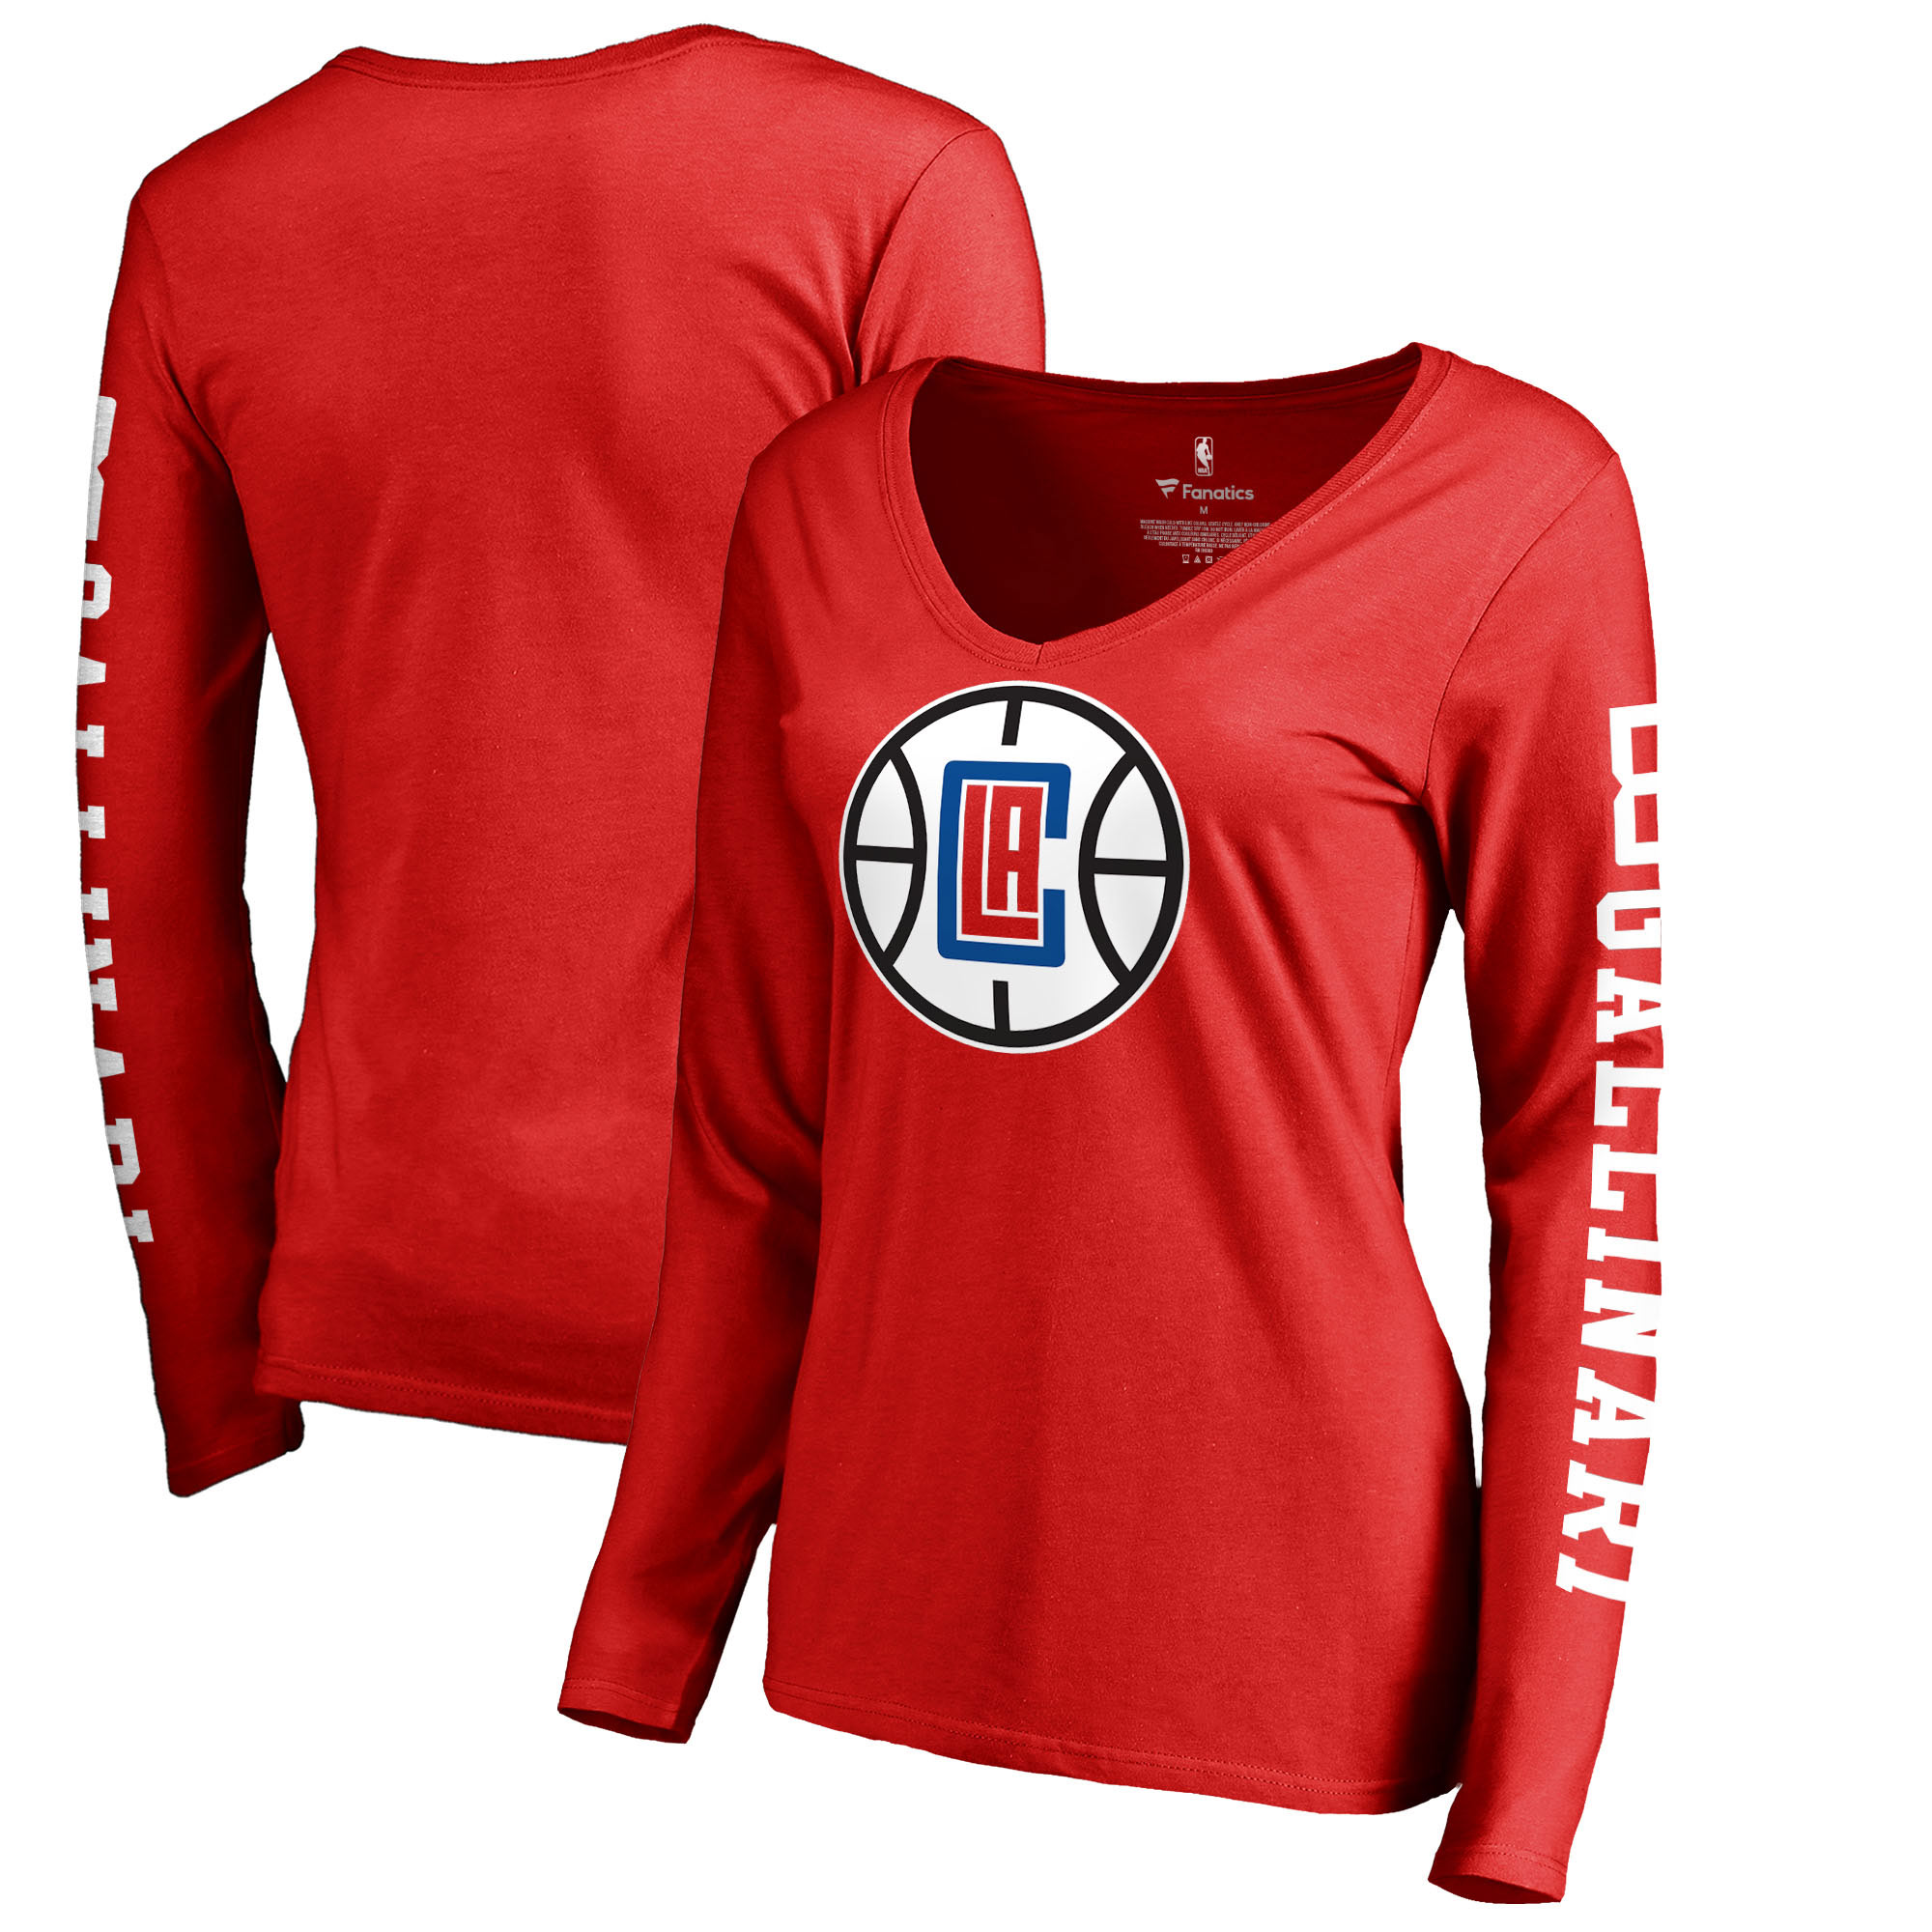 Danilo Gallinari LA Clippers Fanatics Branded Women's Team Idol Name & Number Long Sleeve V-Neck T-Shirt - Red